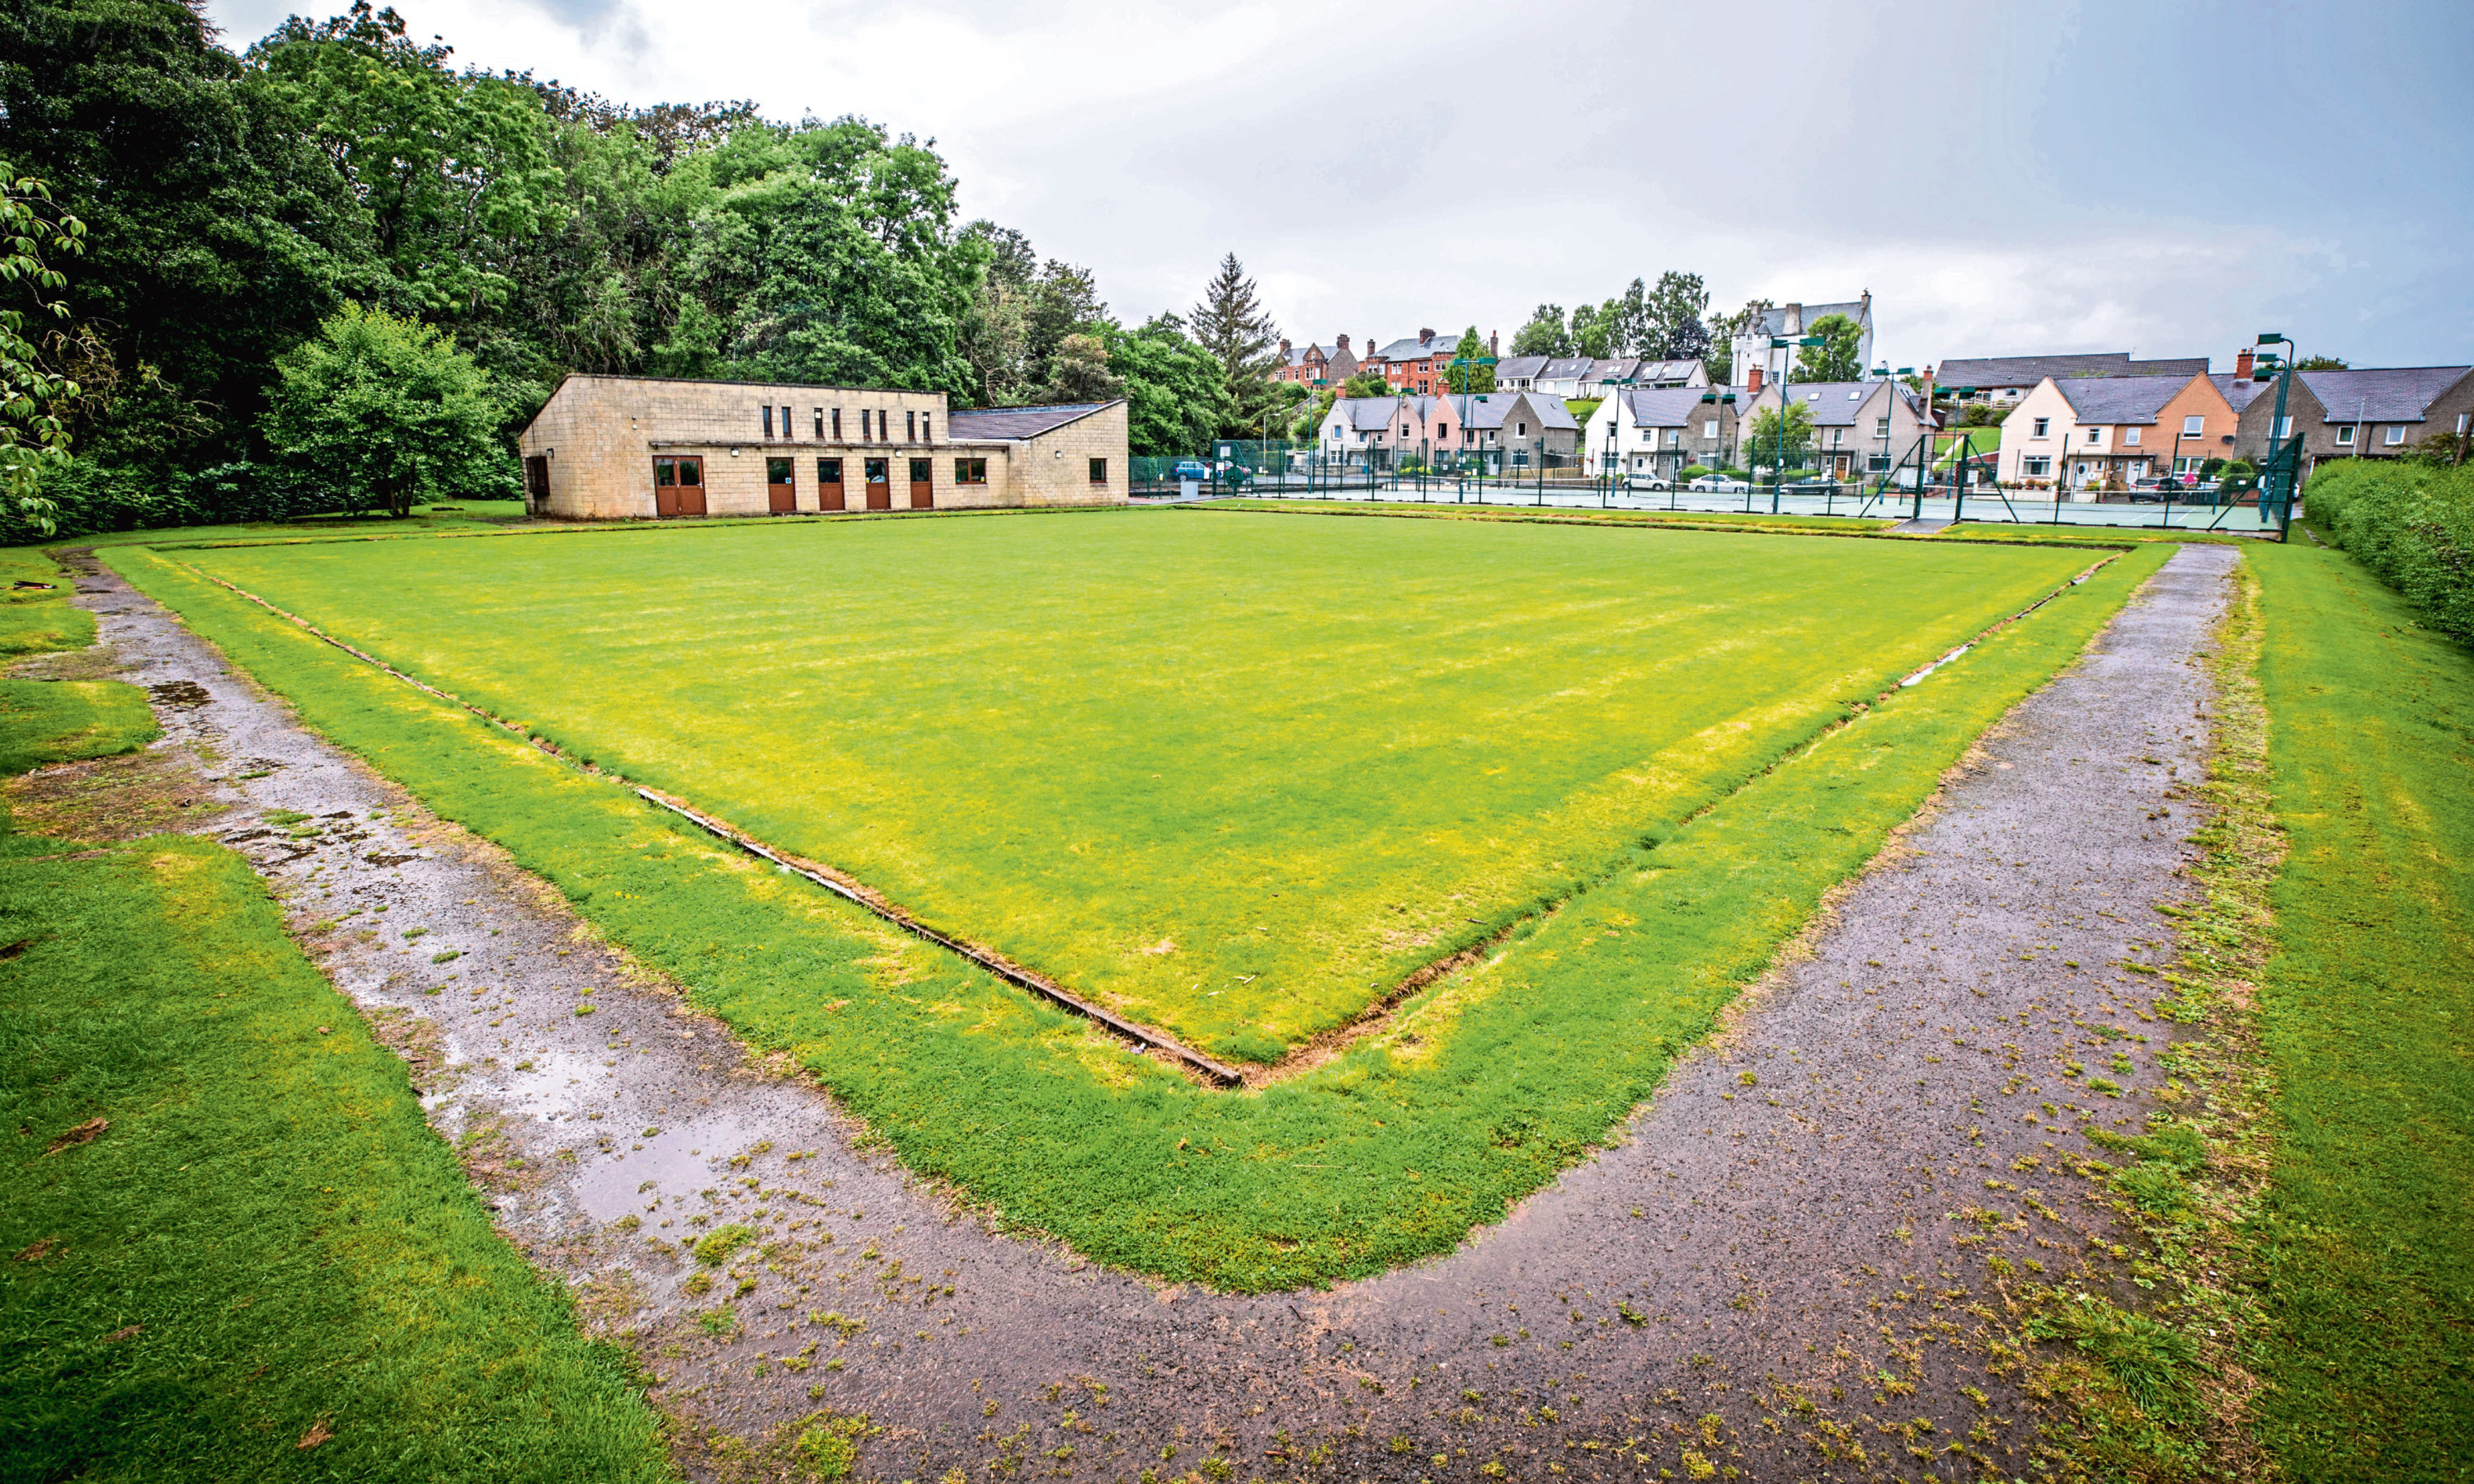 The Bowling Green at Darnhall Tennis Club, Perth is being converted into beach volleyball courts for upcoming championships.